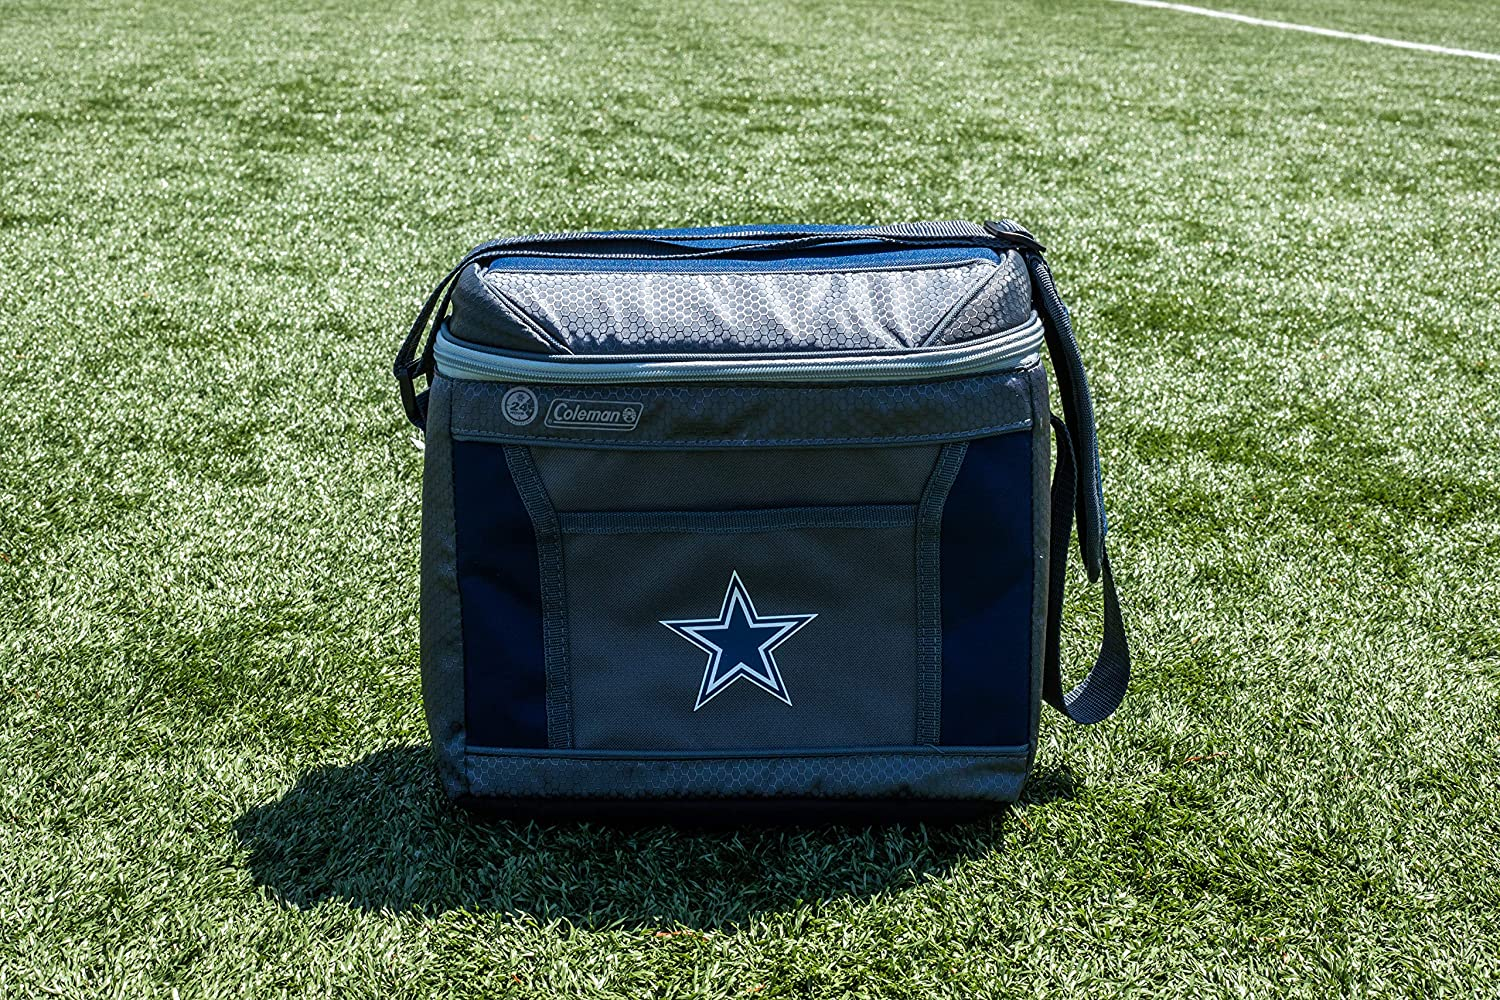 NFL Soft-Sided Insulated Cooler Bag ALL TEAM OPTIONS 16-Can Capacity